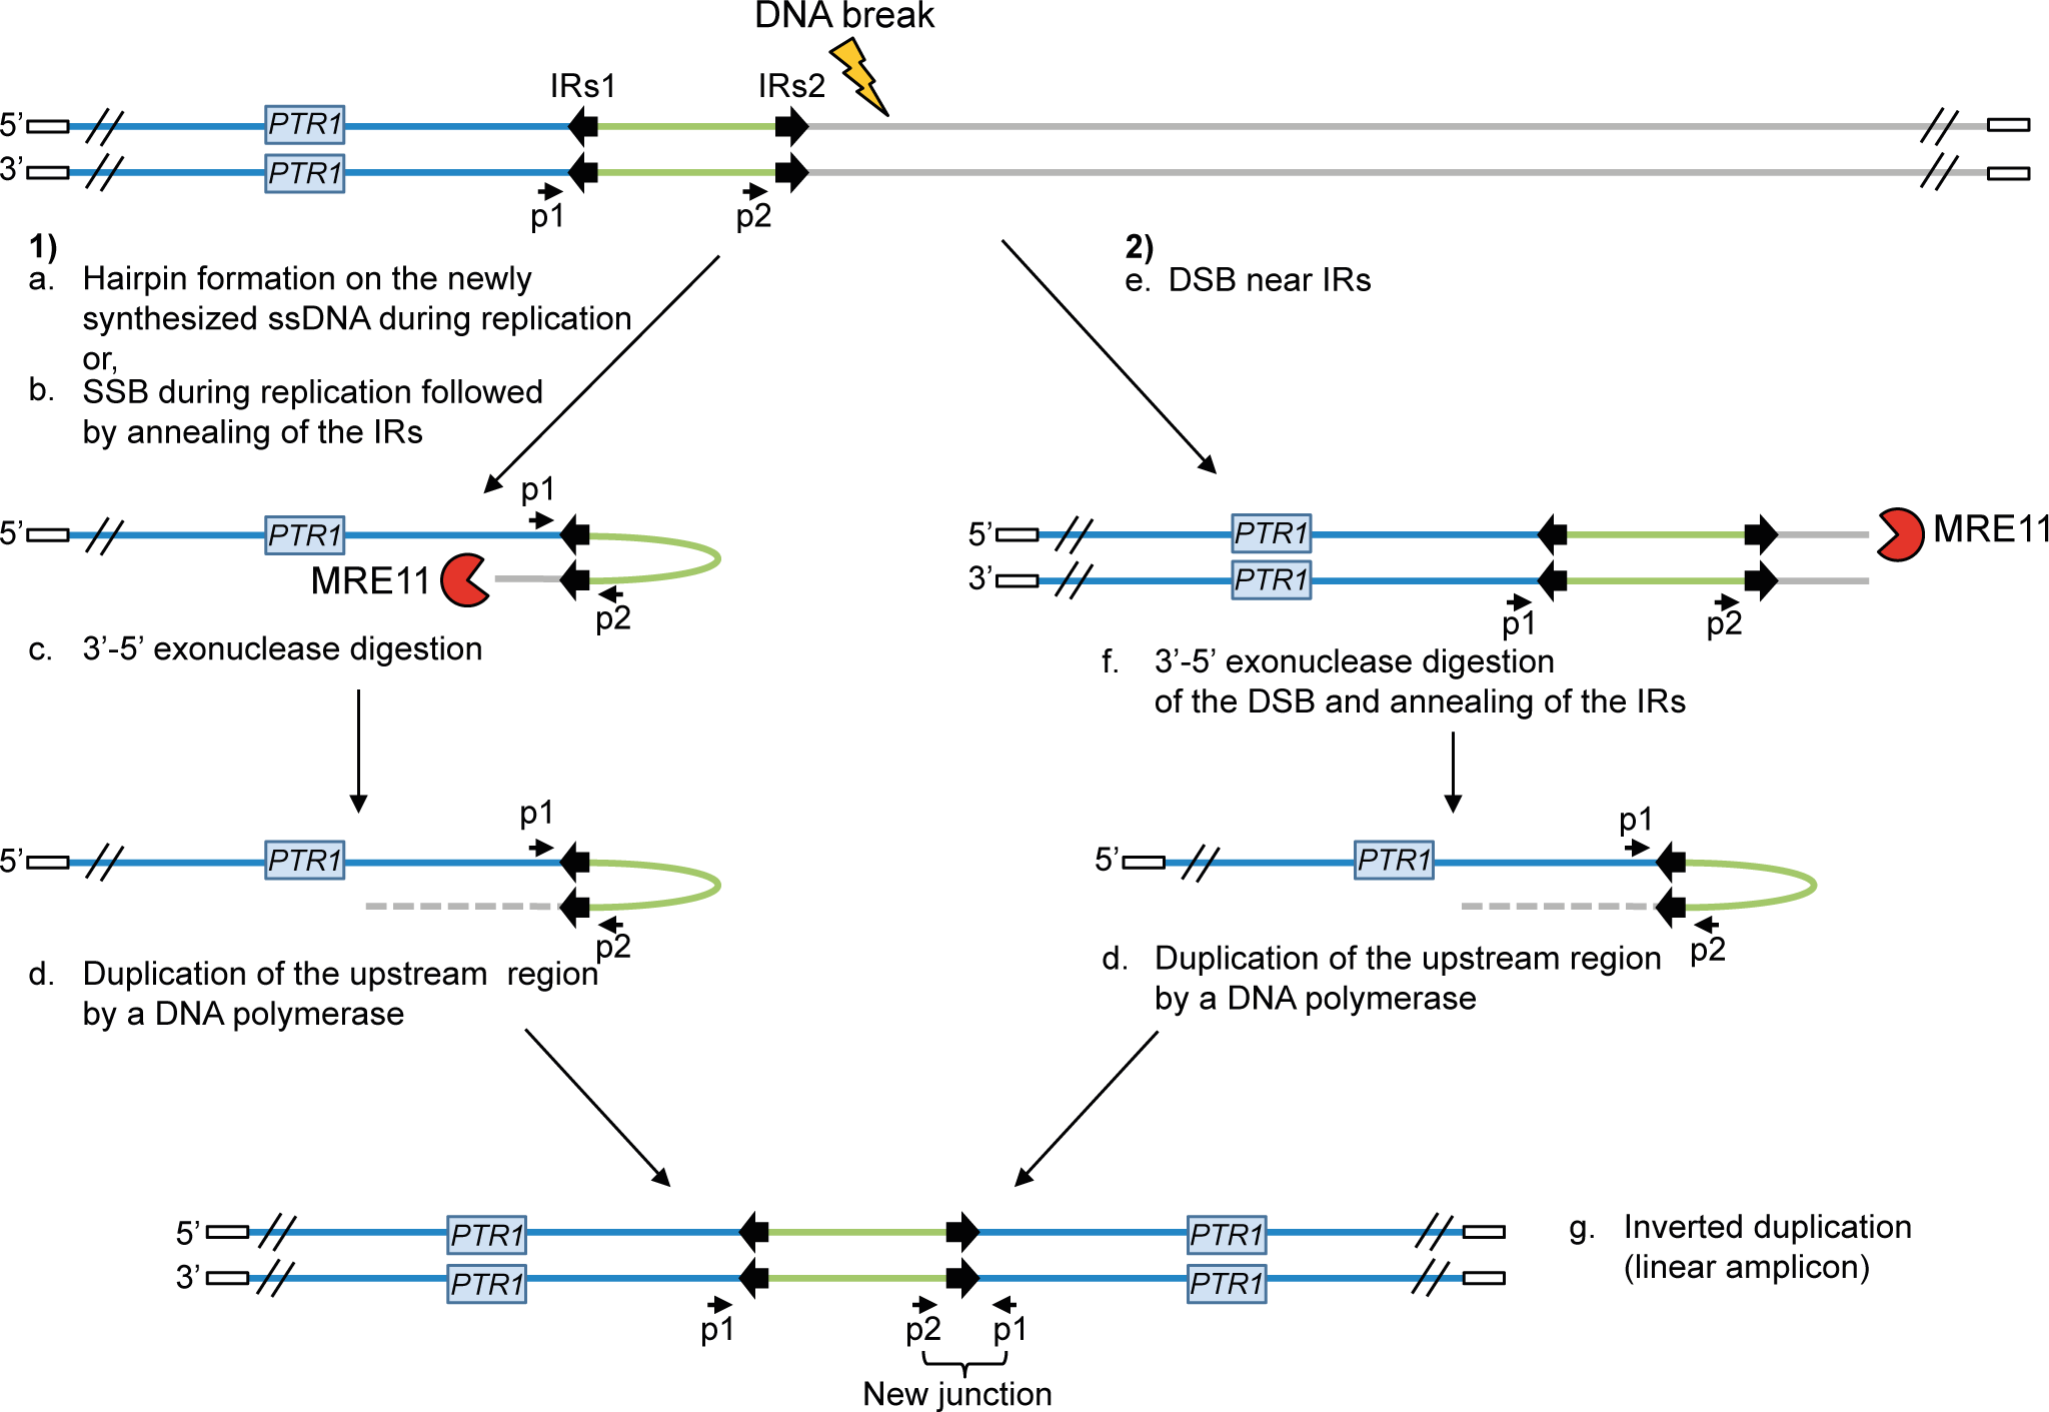 Potential mechanisms for the formation of extrachromosomal linear amplicons.